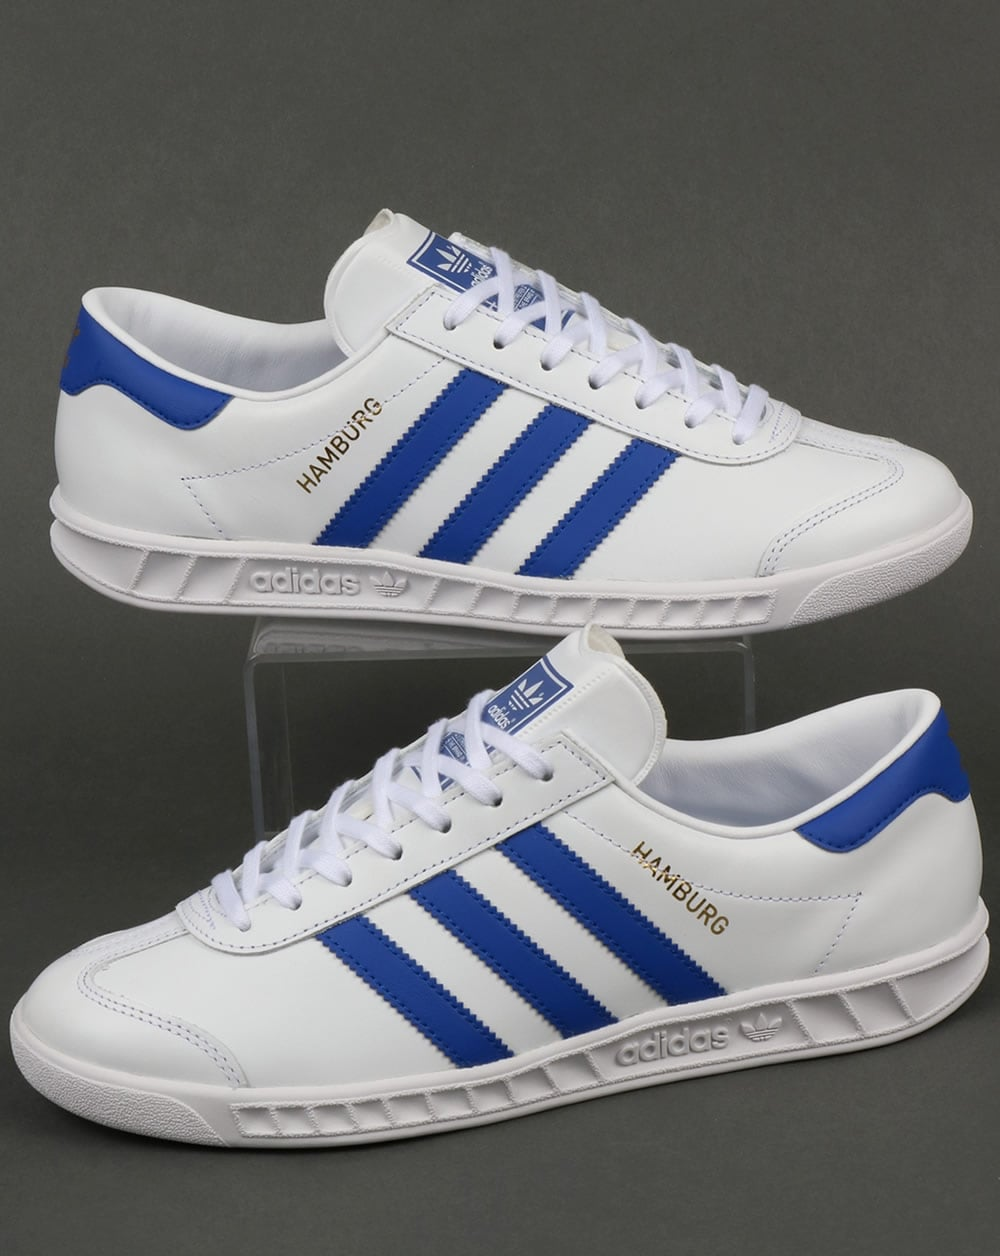 sextante Luminancia Gángster  Adidas Hamburg Trainers White/Bold Blue,originals,mens,shoes,leather